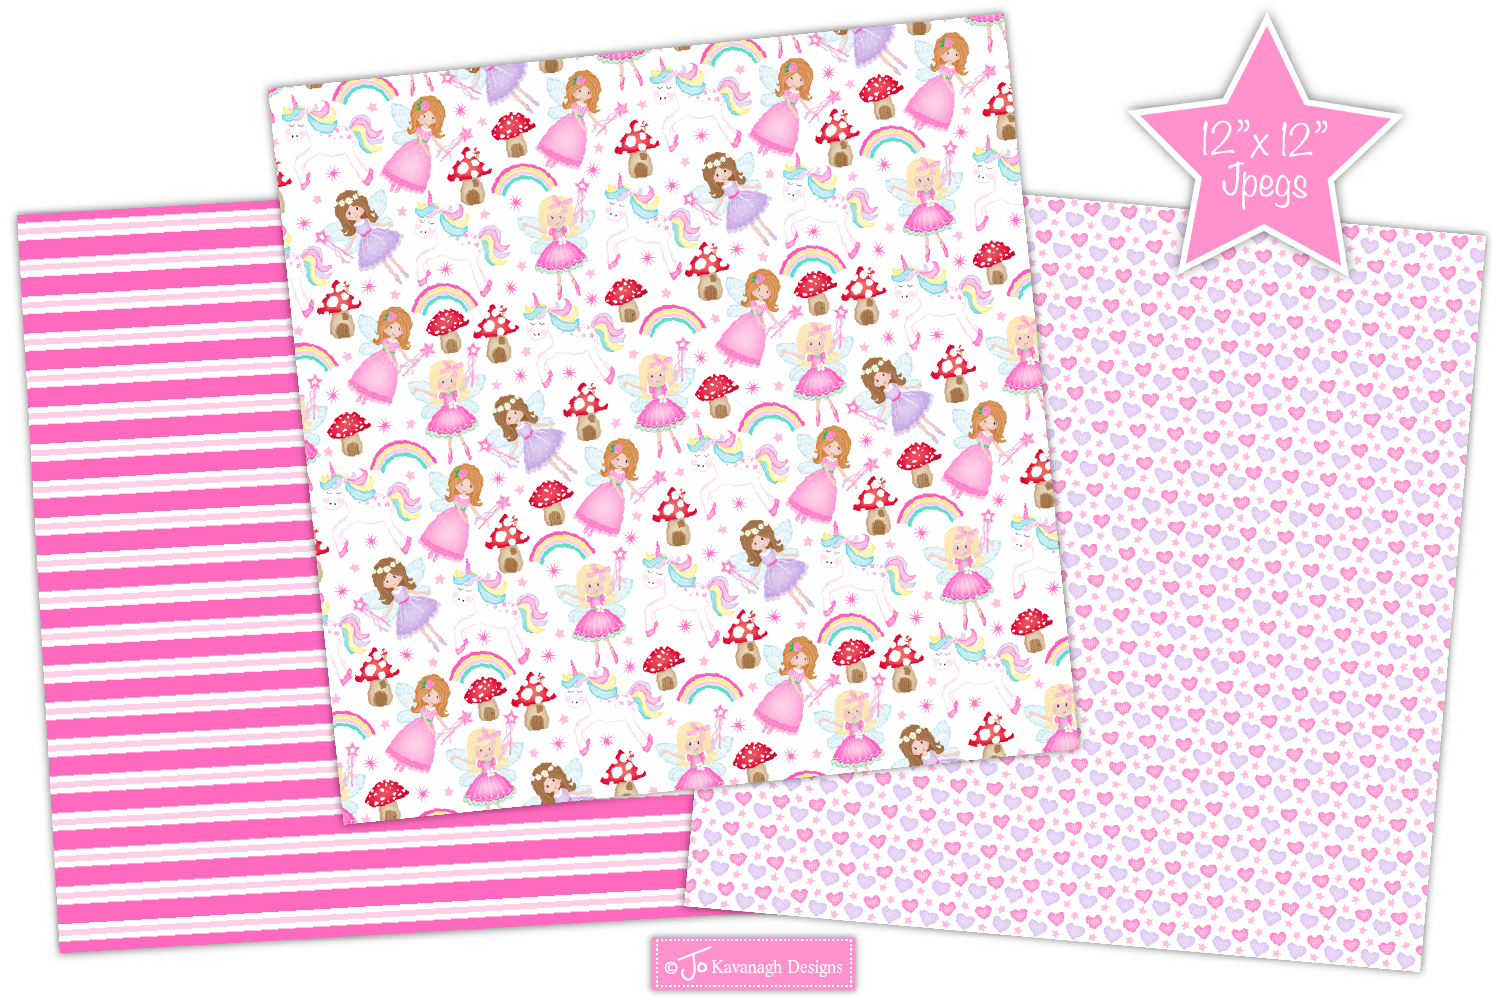 Fairy digital papers, Unicorn patterns, Fairies -P10 example image 4